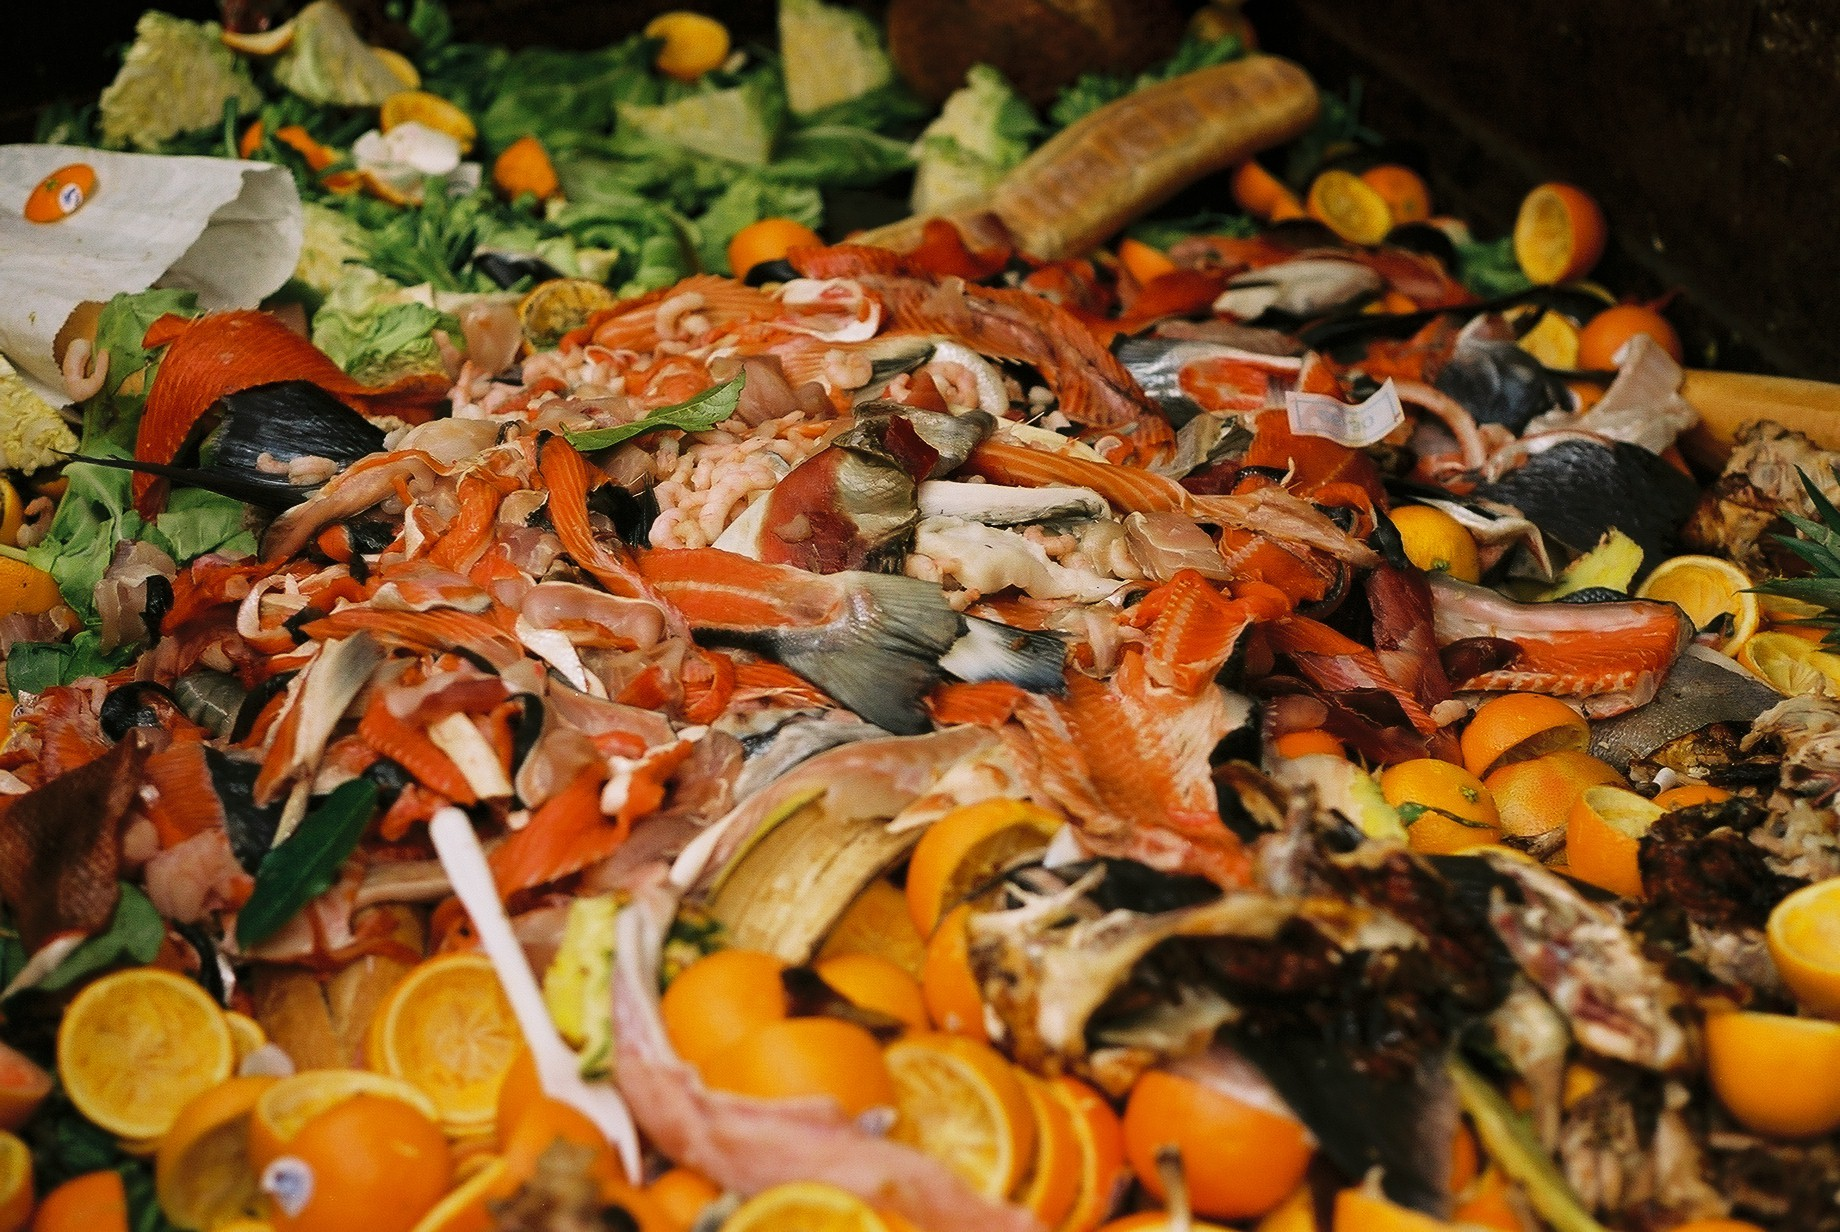 Winnow's mission is to reduce food waste in the restaurant industry